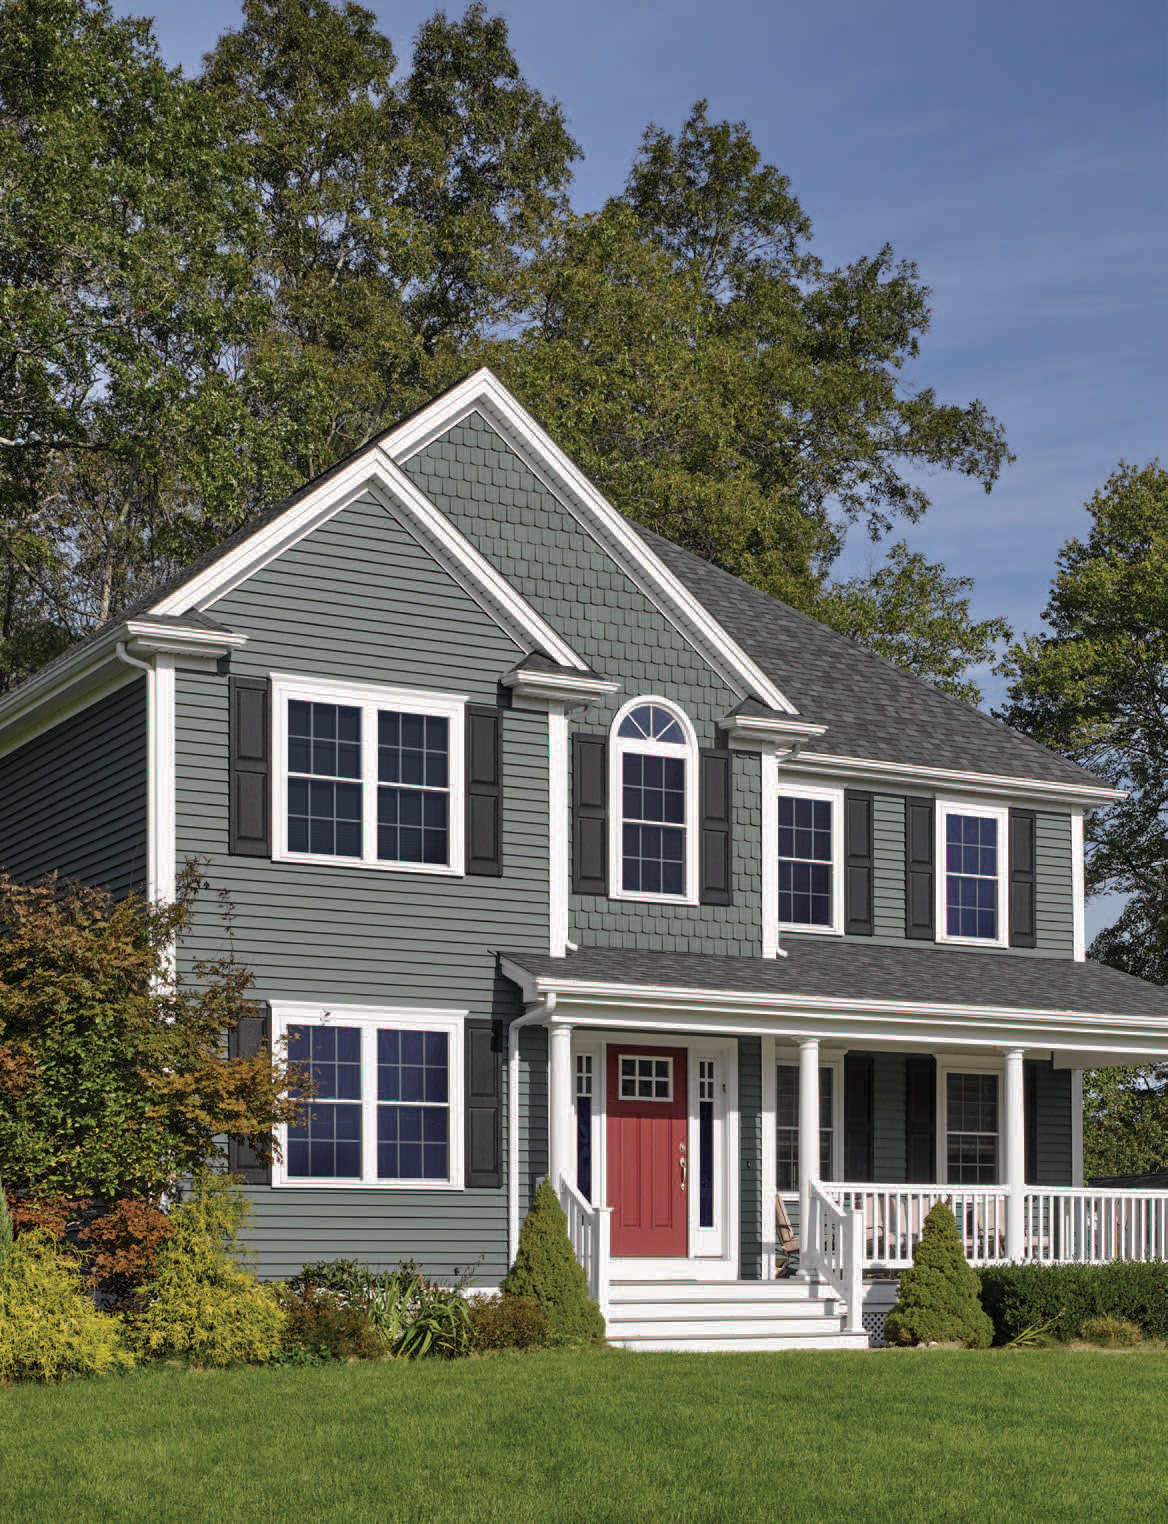 CertainTeed Siding Perfection Shape in Gable